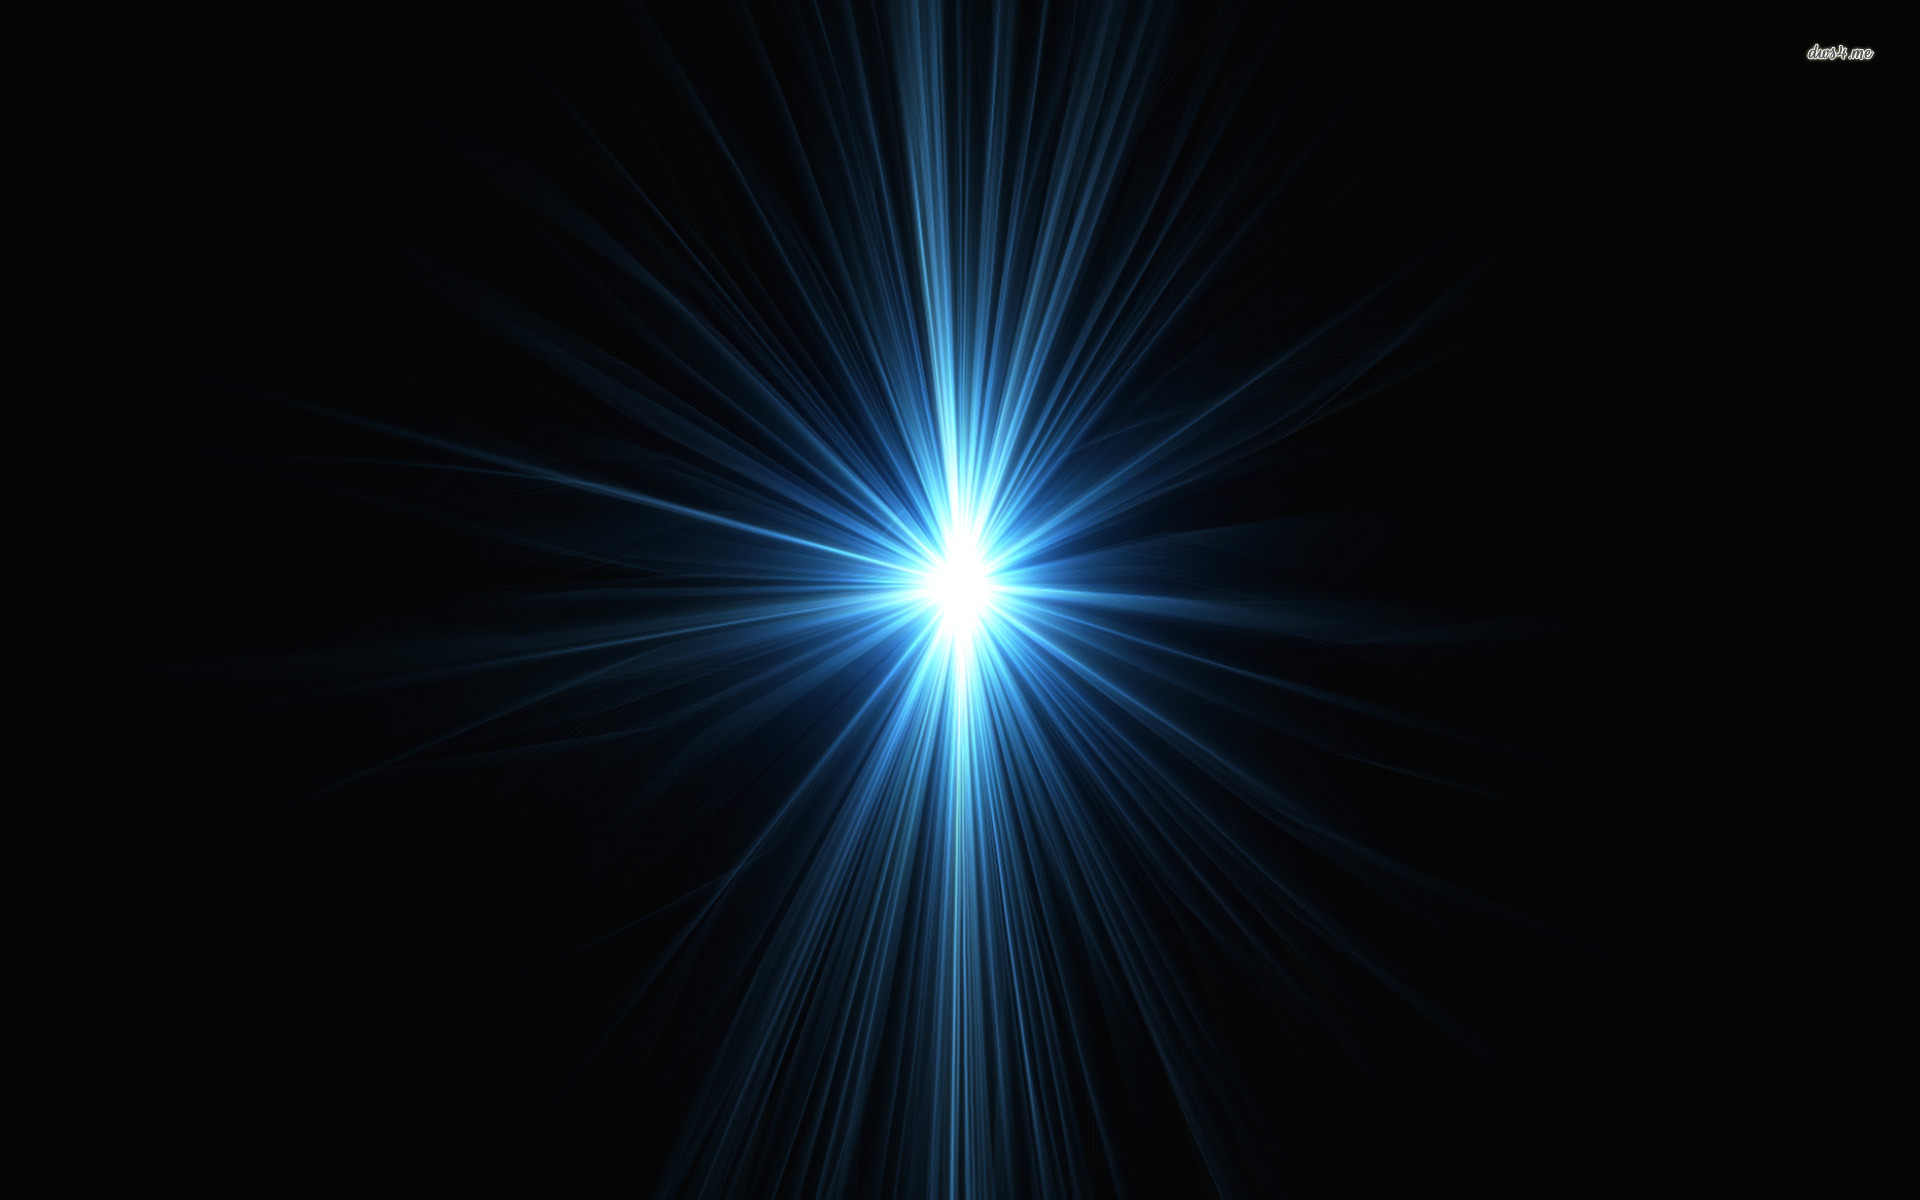 ... Blue Light Source wallpaper 1920x1200 ...